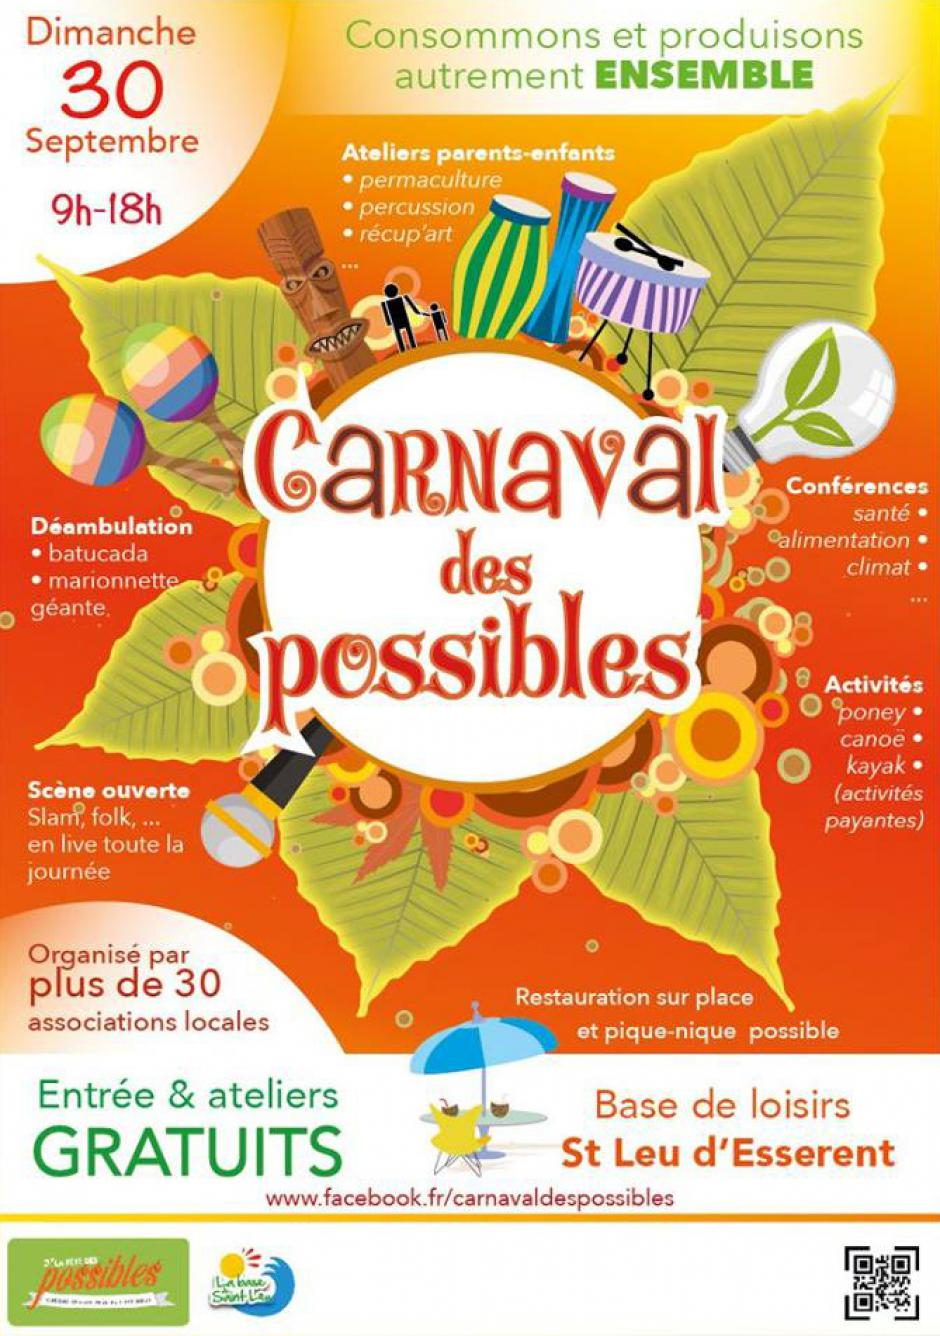 30 septembre, Saint-Leu-d'Esserent - Le Carnaval des Possibles